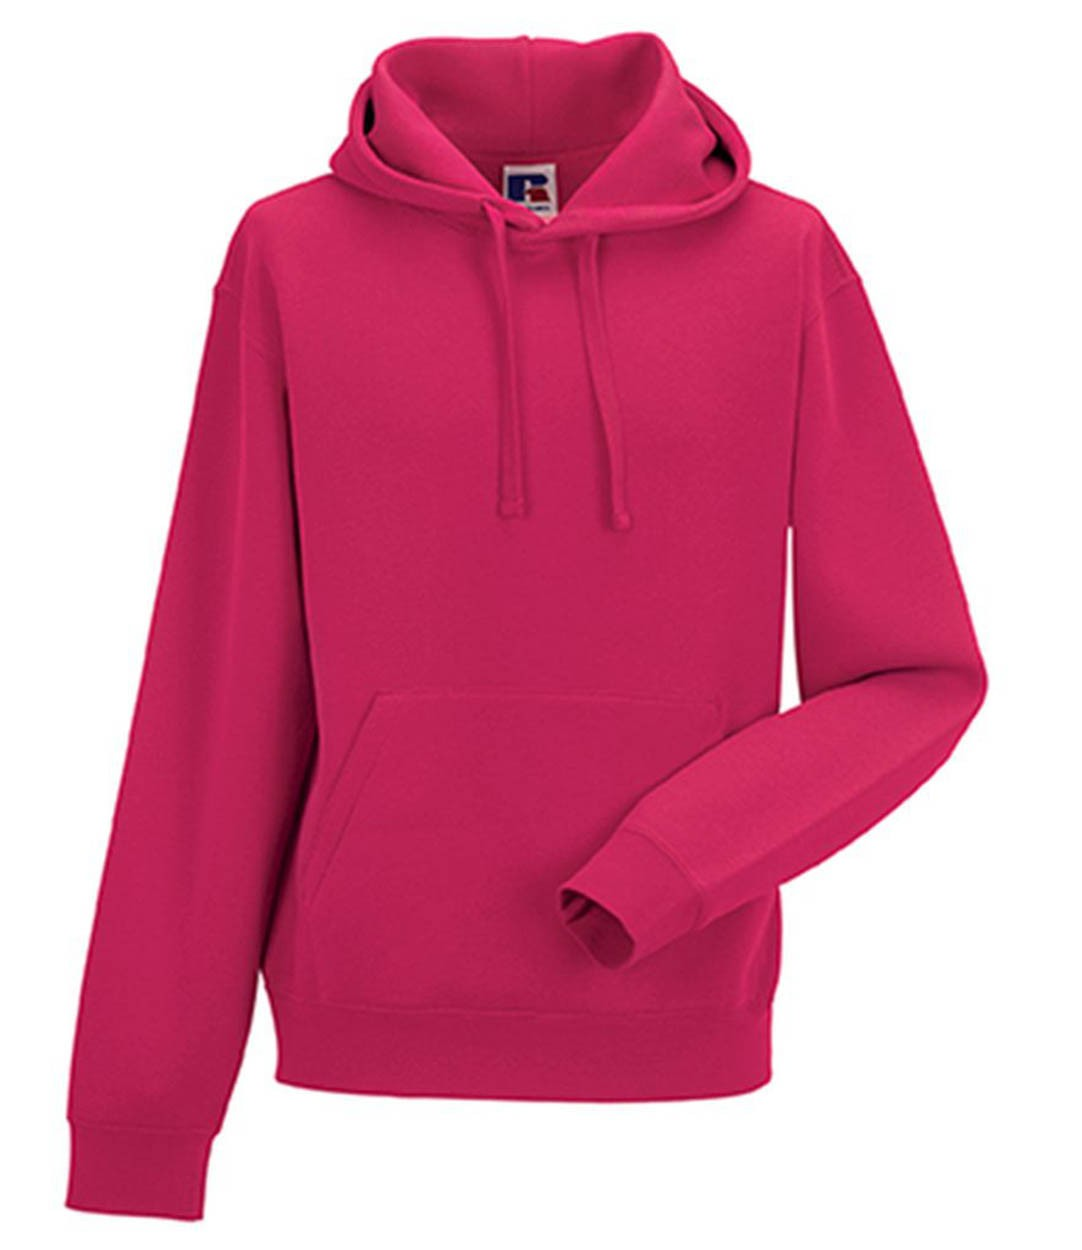 Russell 265M Authentic Hooded Sweatshirt - Standard Hoodies ... c941e870516